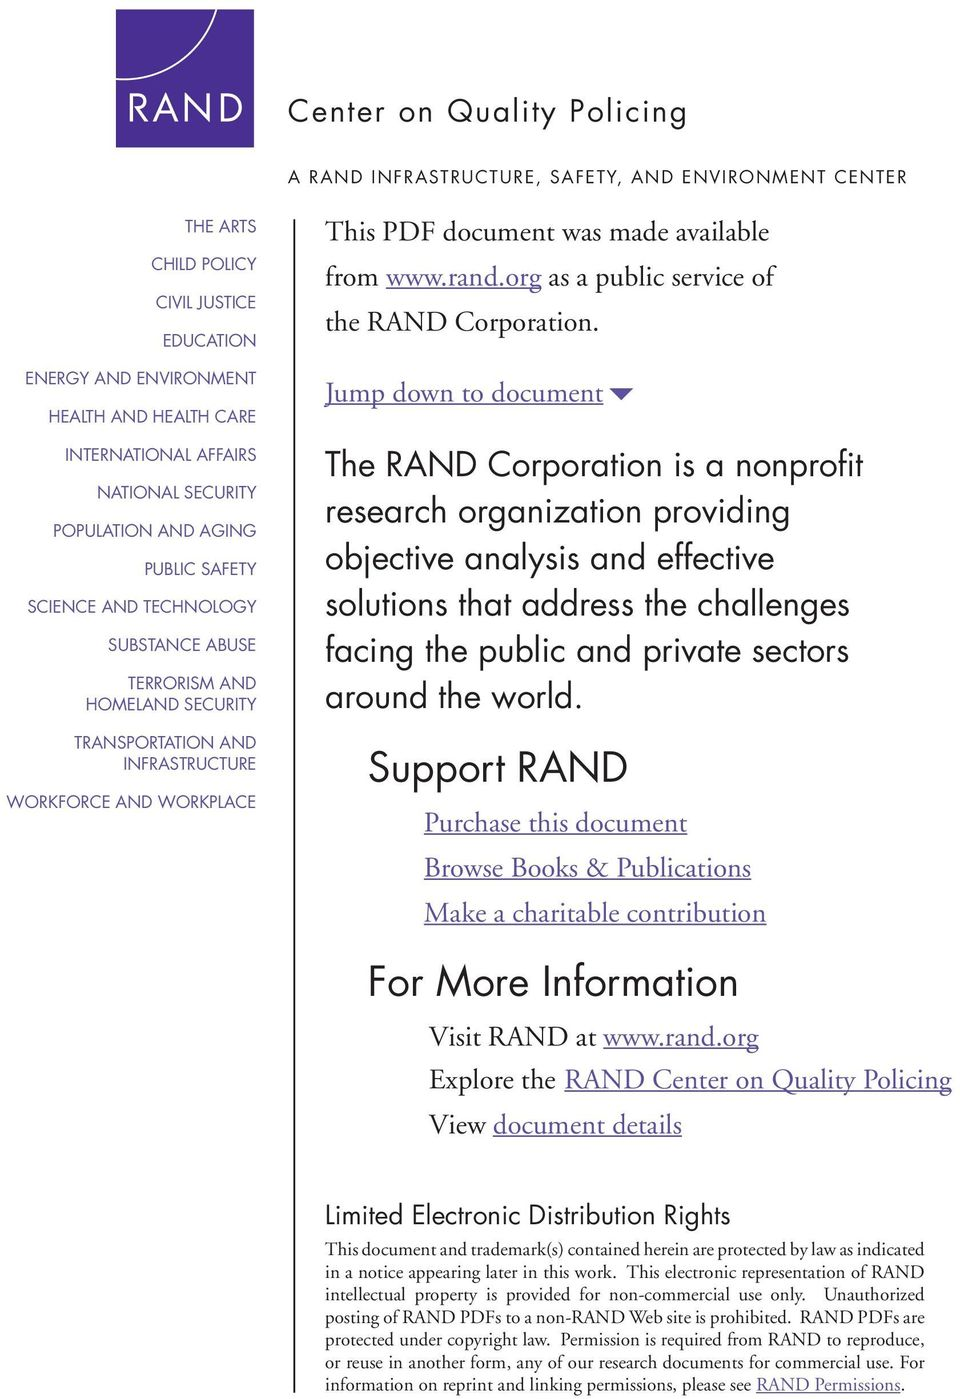 was made available from www.rand.org as a public service of the RAND Corporation.